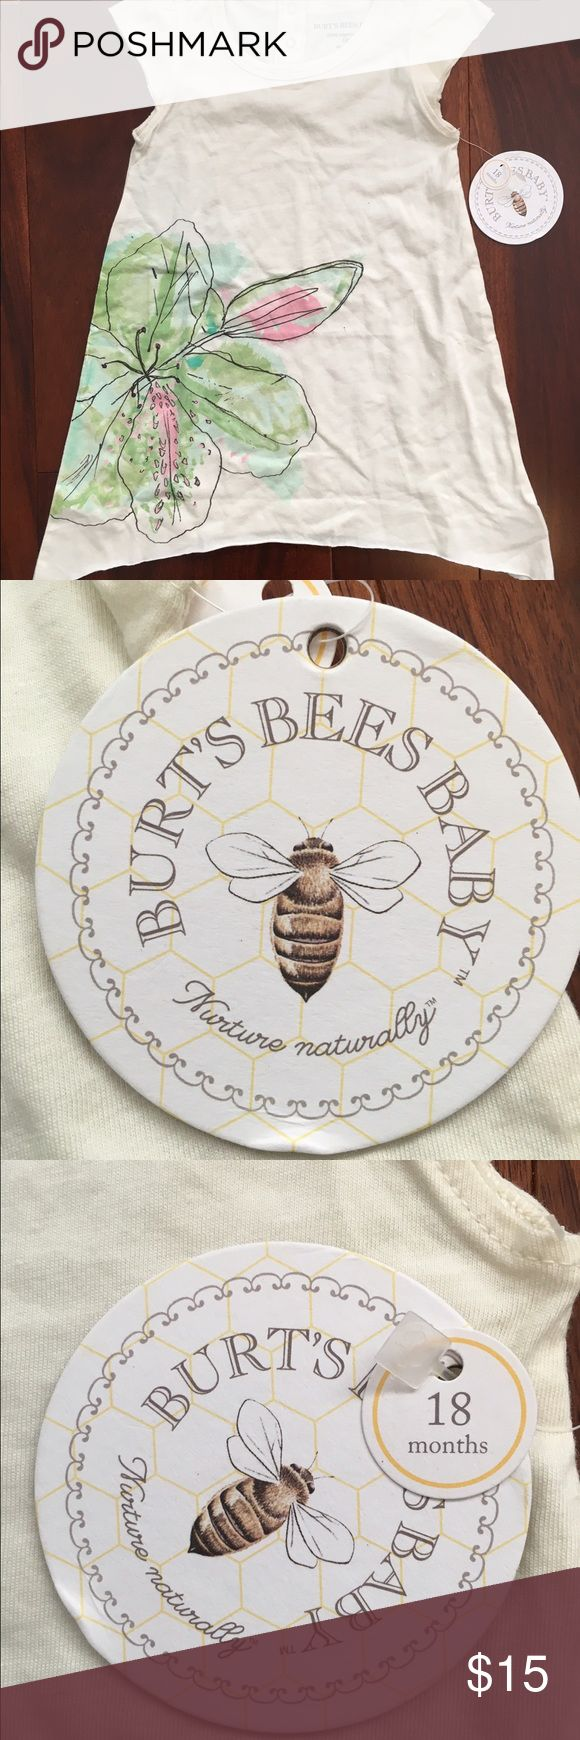 Burts Bees Toddler Dress Brand new, perfect for summer, thin and comfortable Burt's Bees Baby Dresses Casual